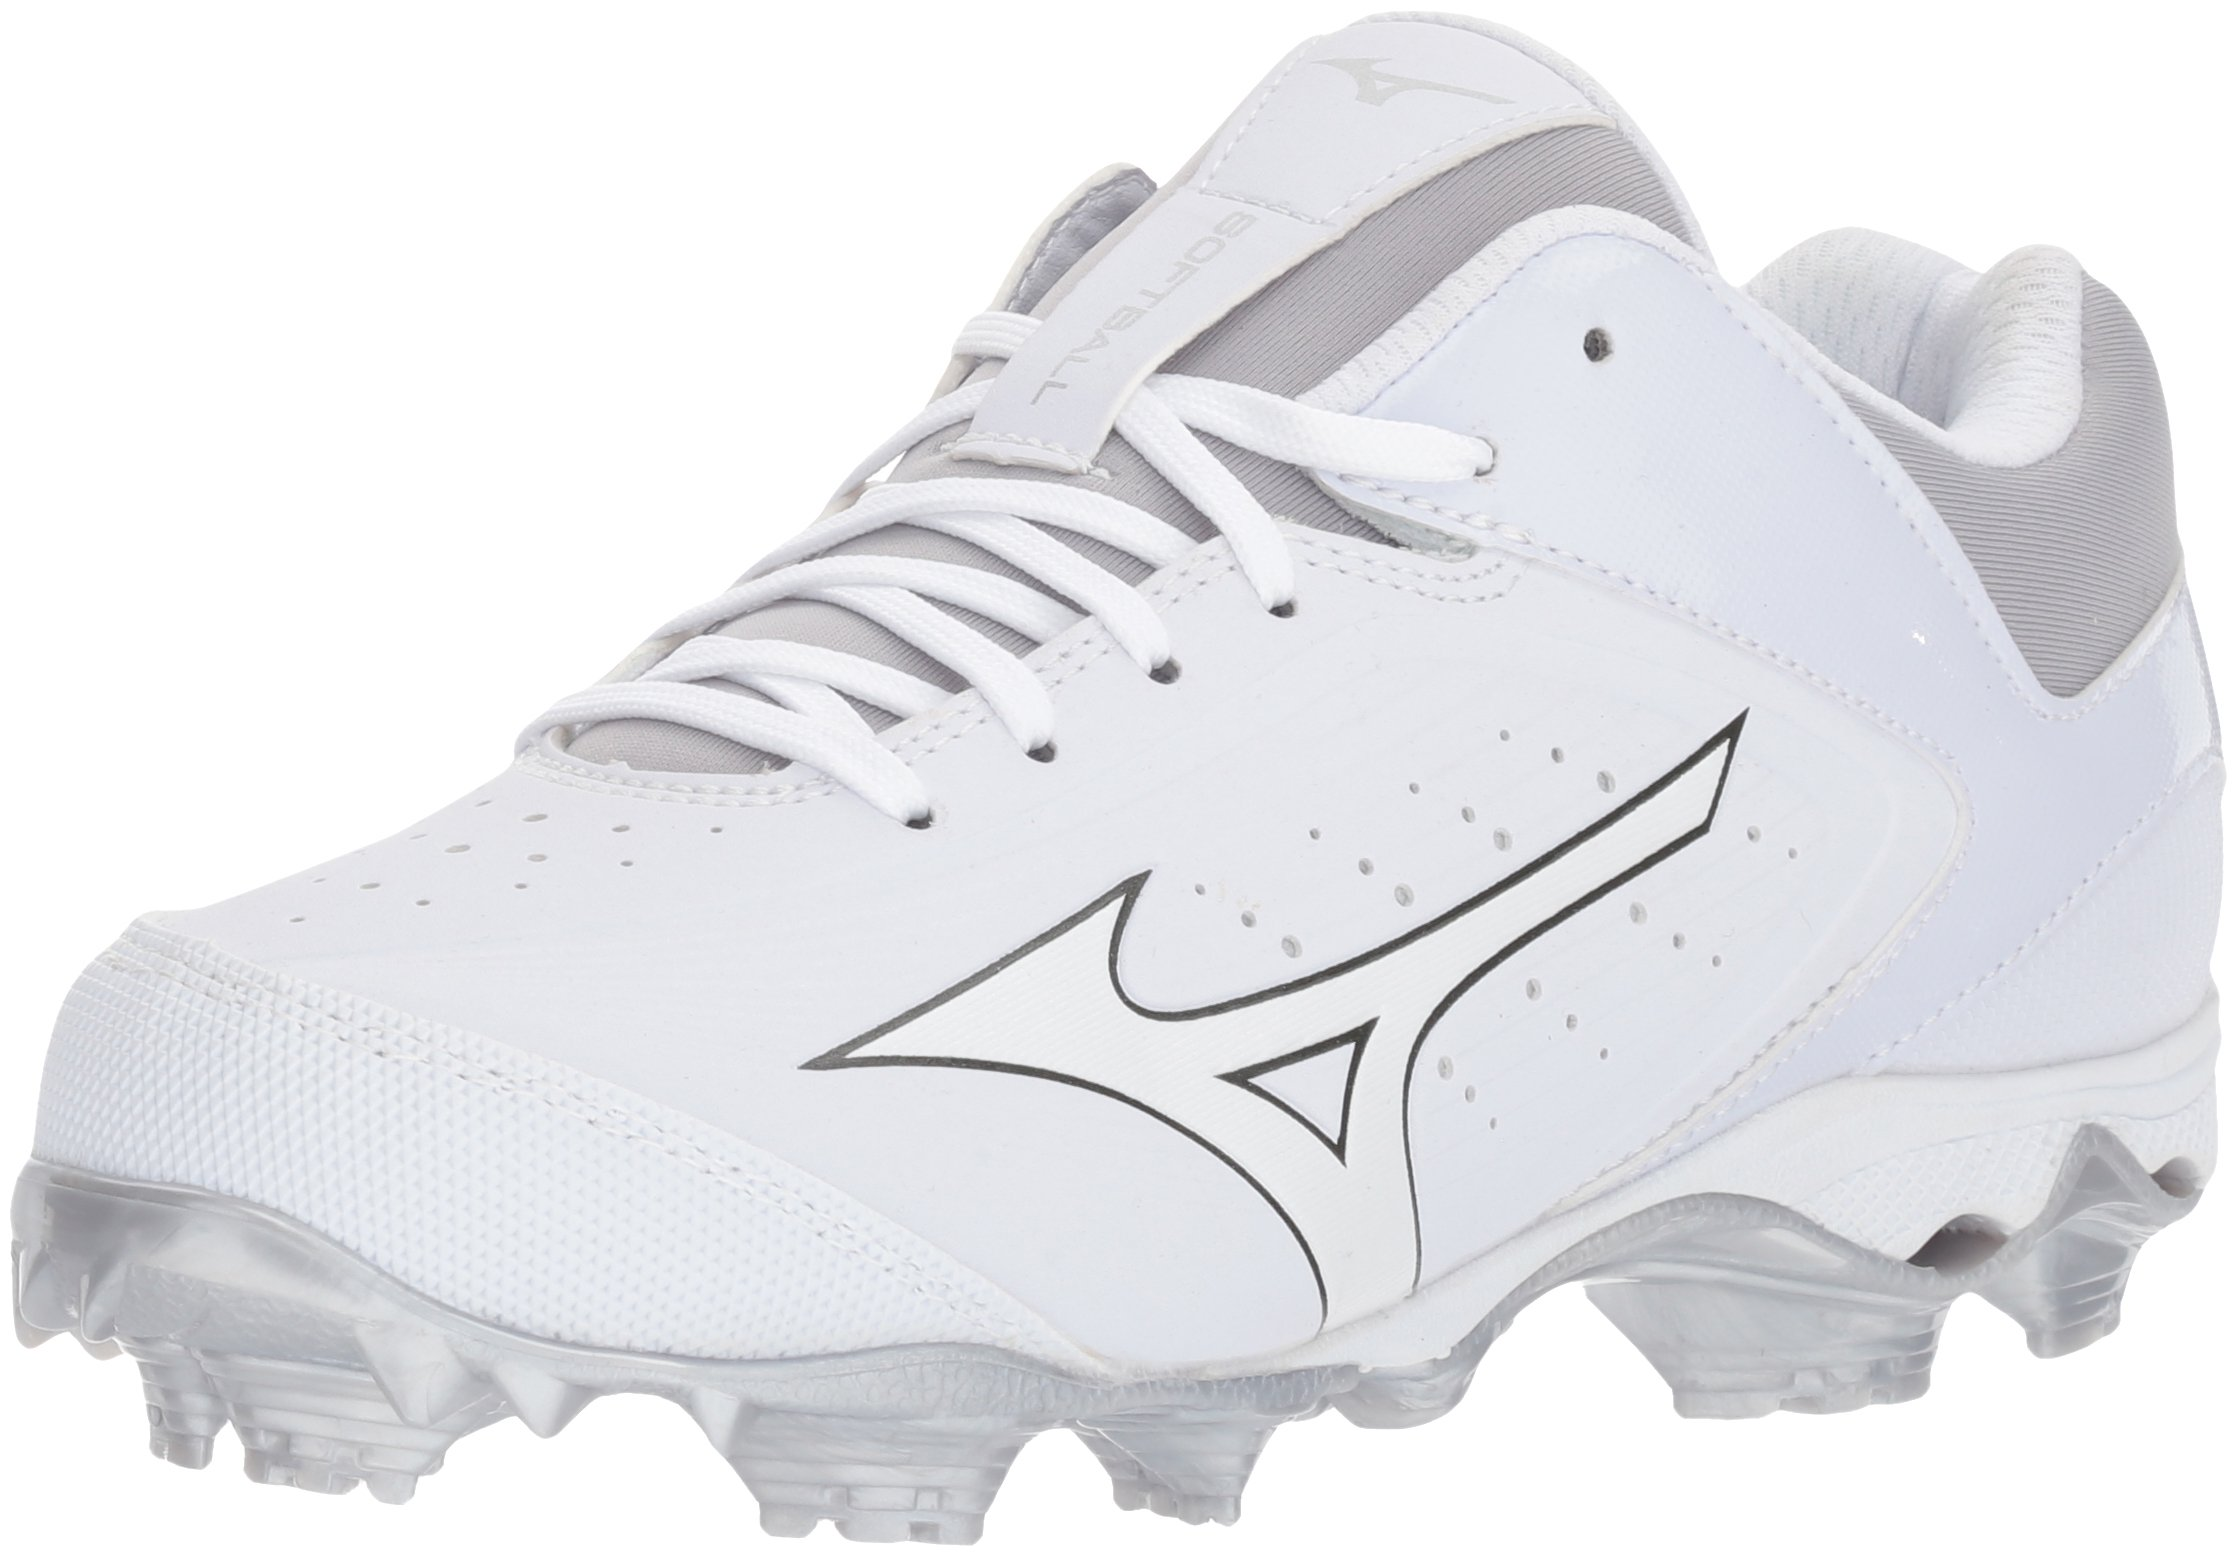 Mizuno Women's 9-Spike Advanced Finch Elite 3 Fastpitch Cleat Softball Shoe, White/White, 7.5 B US by Mizuno